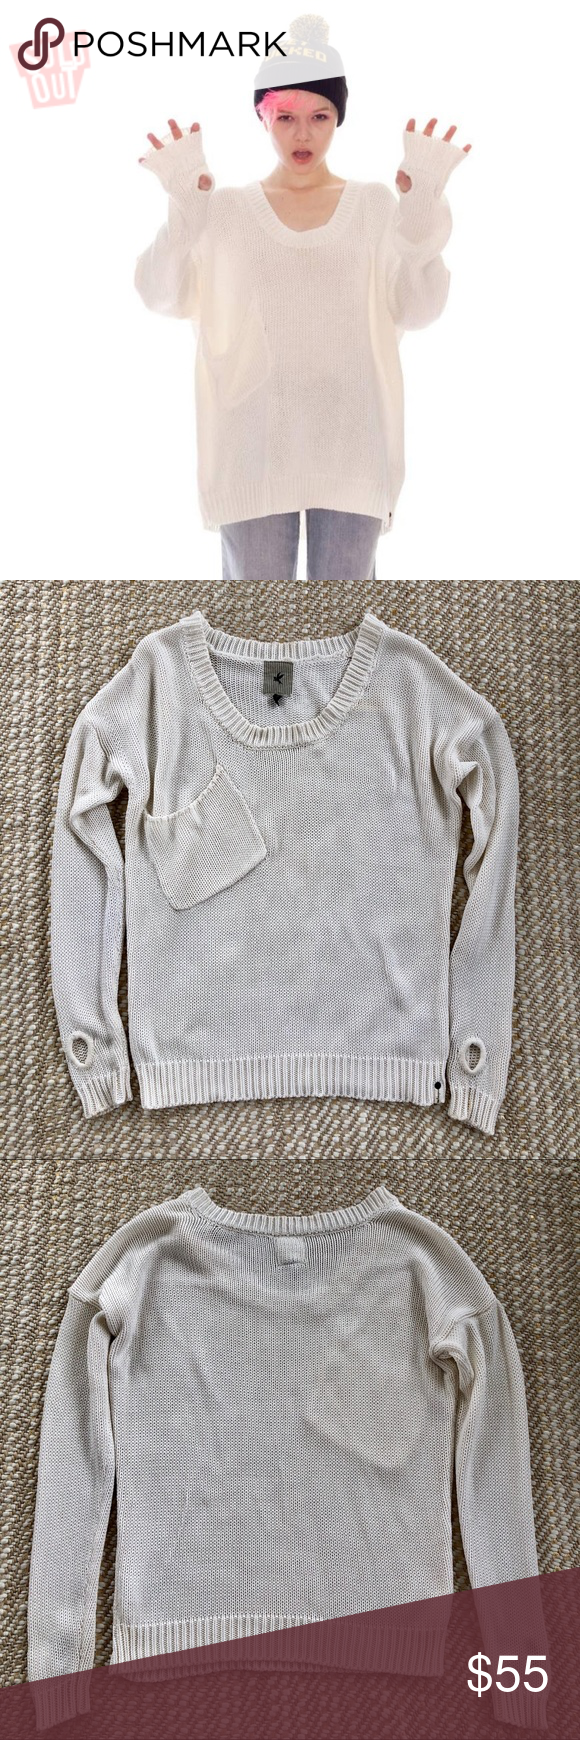 One teaspoon white chunky knit sweater thumb holes One teaspoon white chunky knit jumper/sweater with thumb holes.what an awesome sweater.oversized fit with thumbholes-got to love that One teaspoon white chunky knit sweater thumb holes One teaspoon white chunky knit jumper/sweater with thumb holes.what an awesome sweater.oversized fit with thumbholes-got to love that #chunkyknitjumper